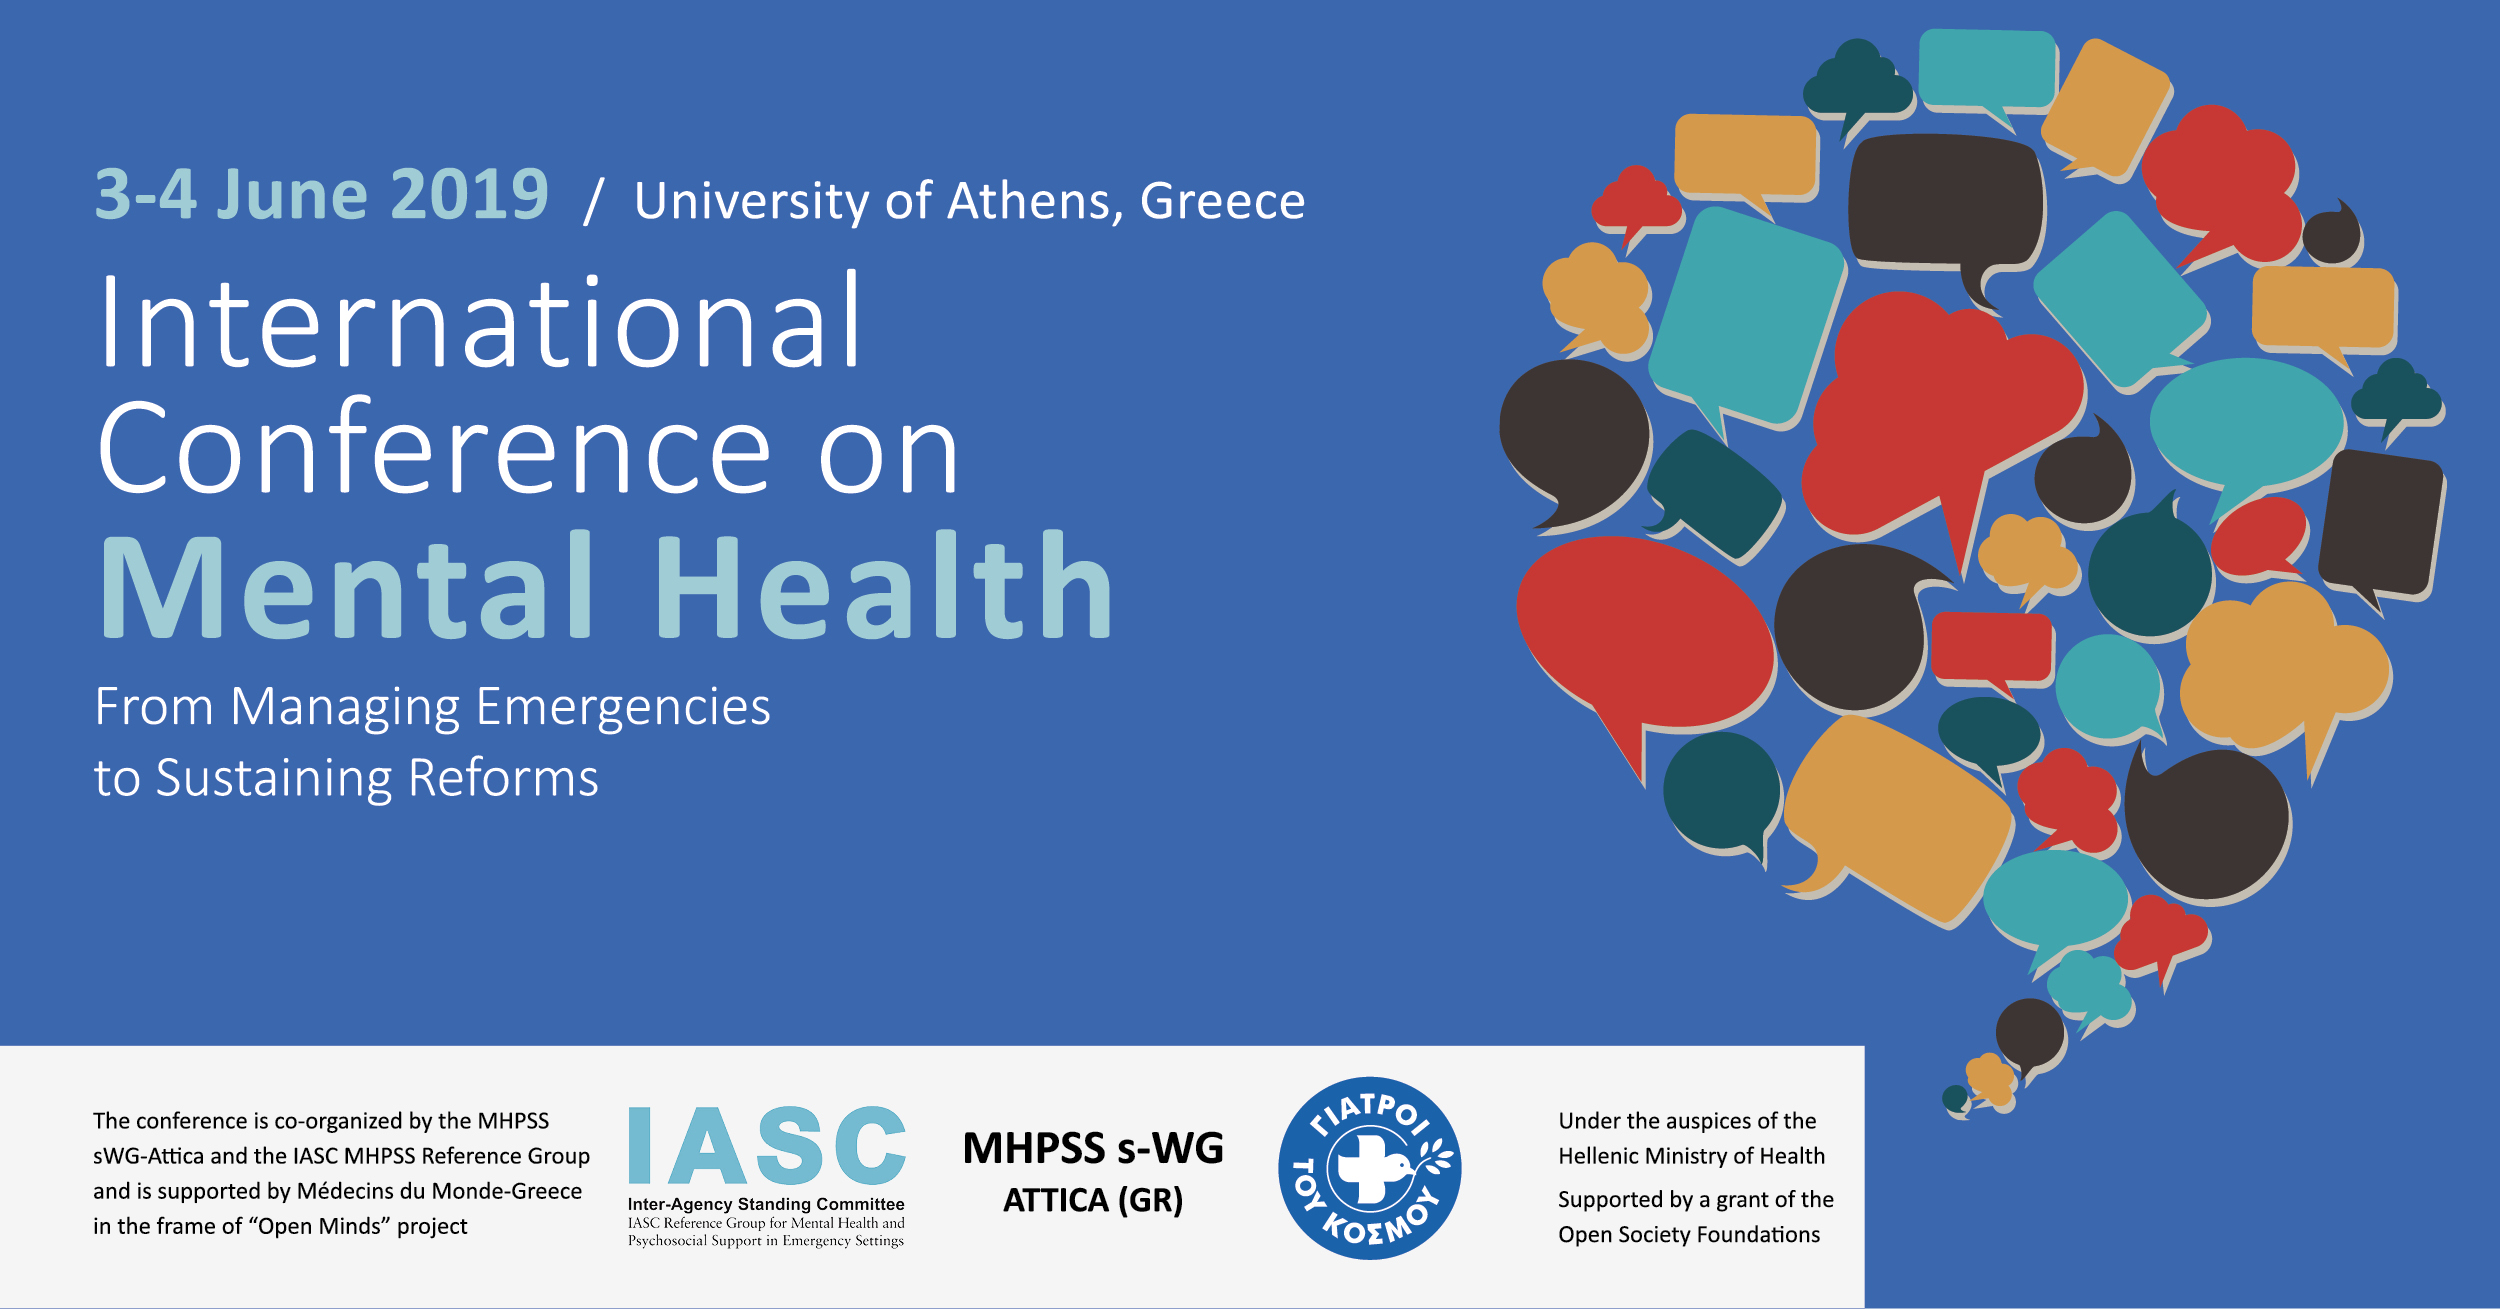 International Conference on Mental Health: From Managing Emergencies to Sustaining Reforms (Athens, 3-4 June 2019)